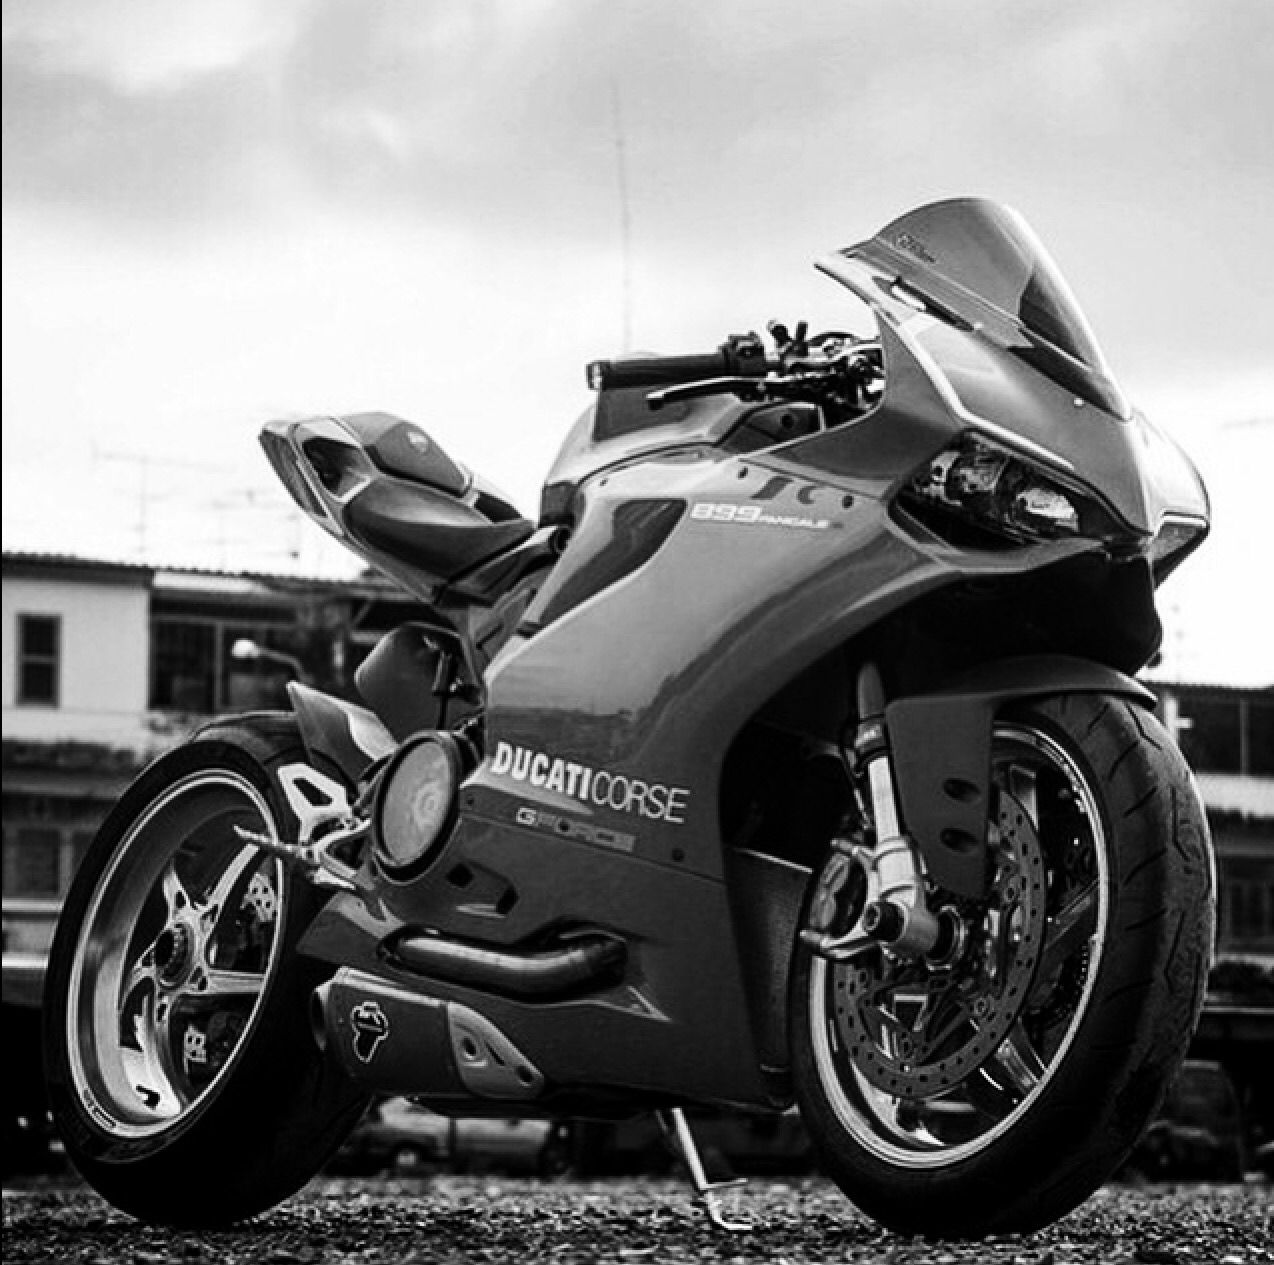 ducati 899 panigale ducati panigale 899 pinterest triciclo. Black Bedroom Furniture Sets. Home Design Ideas